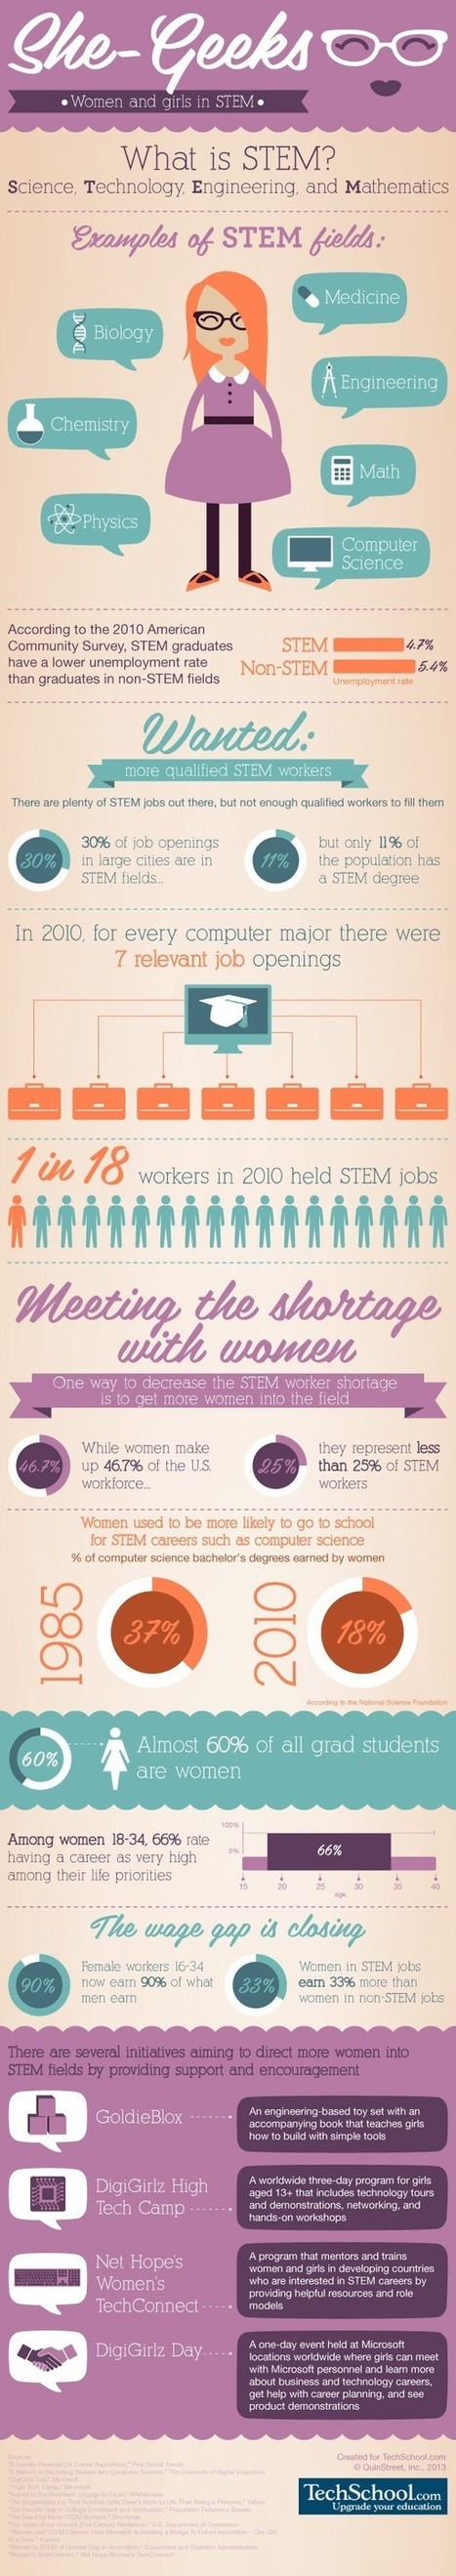 She-Geeks: Women and girls in STEM [infographic] | Social Media, the 21st Century Digital Tool Kit | Scoop.it